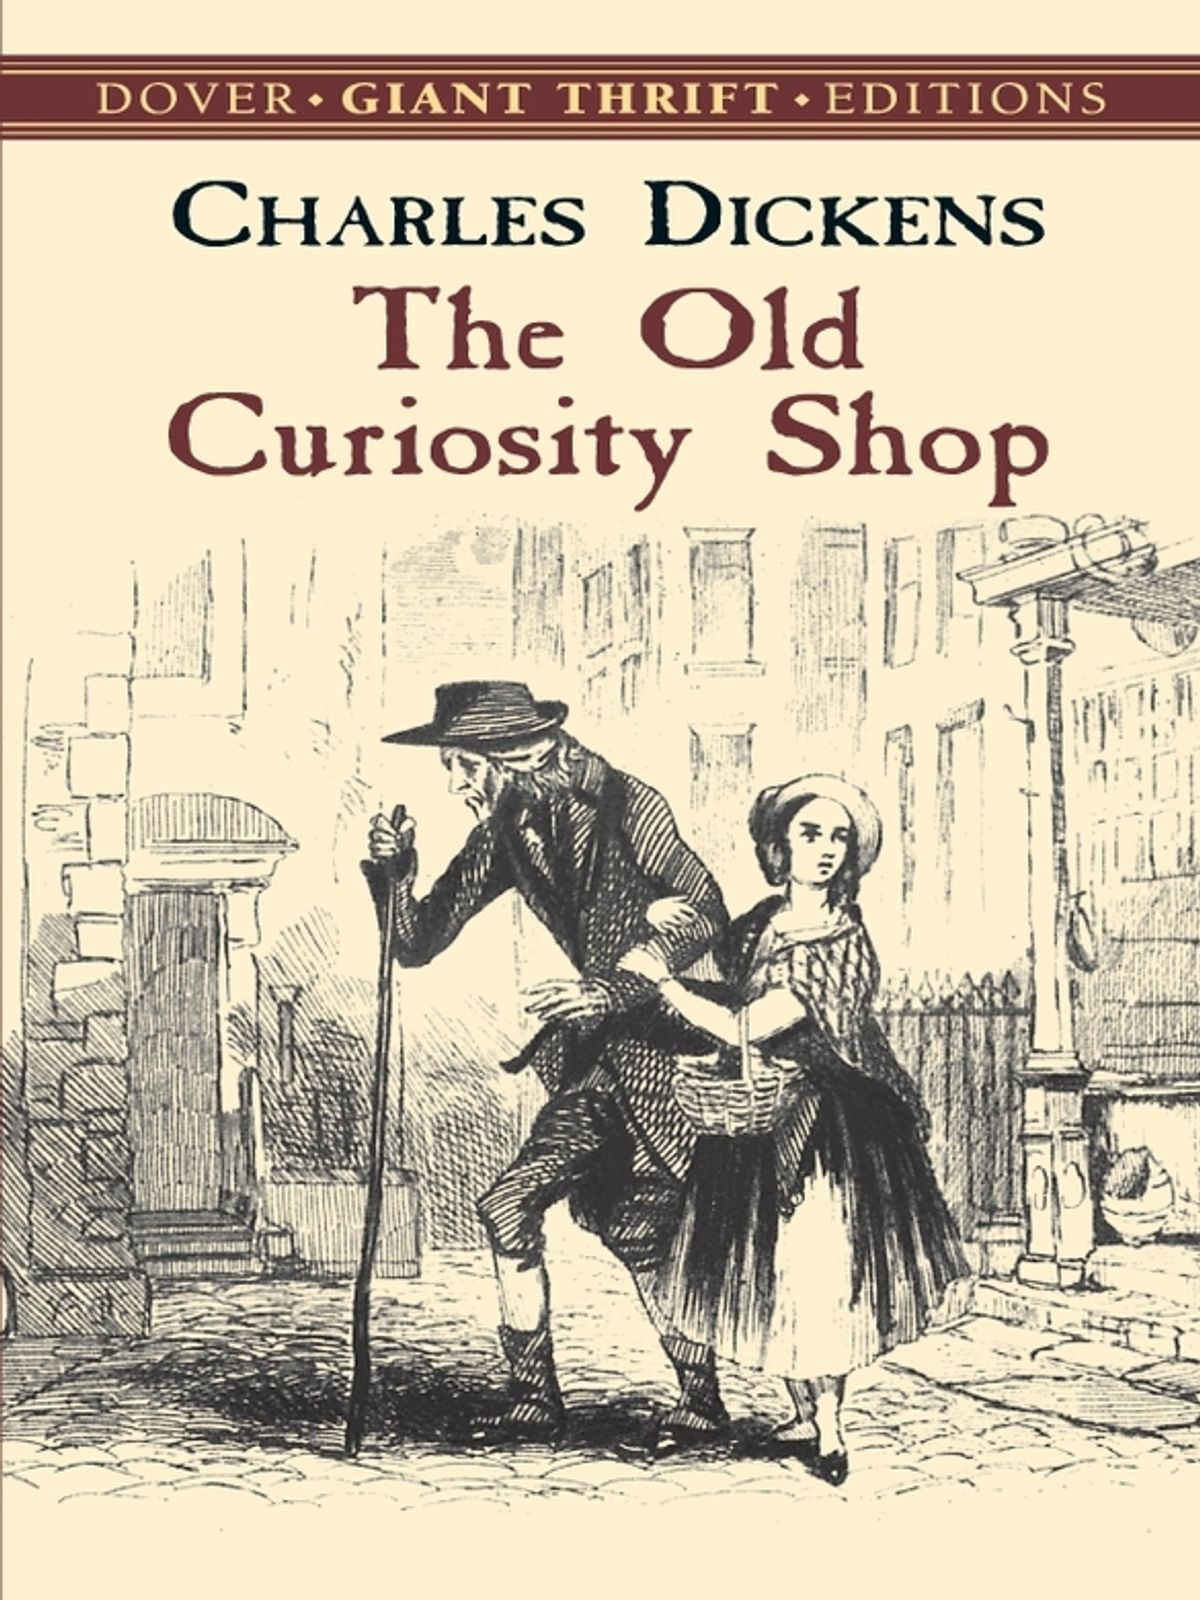 Charles Dickens books 11